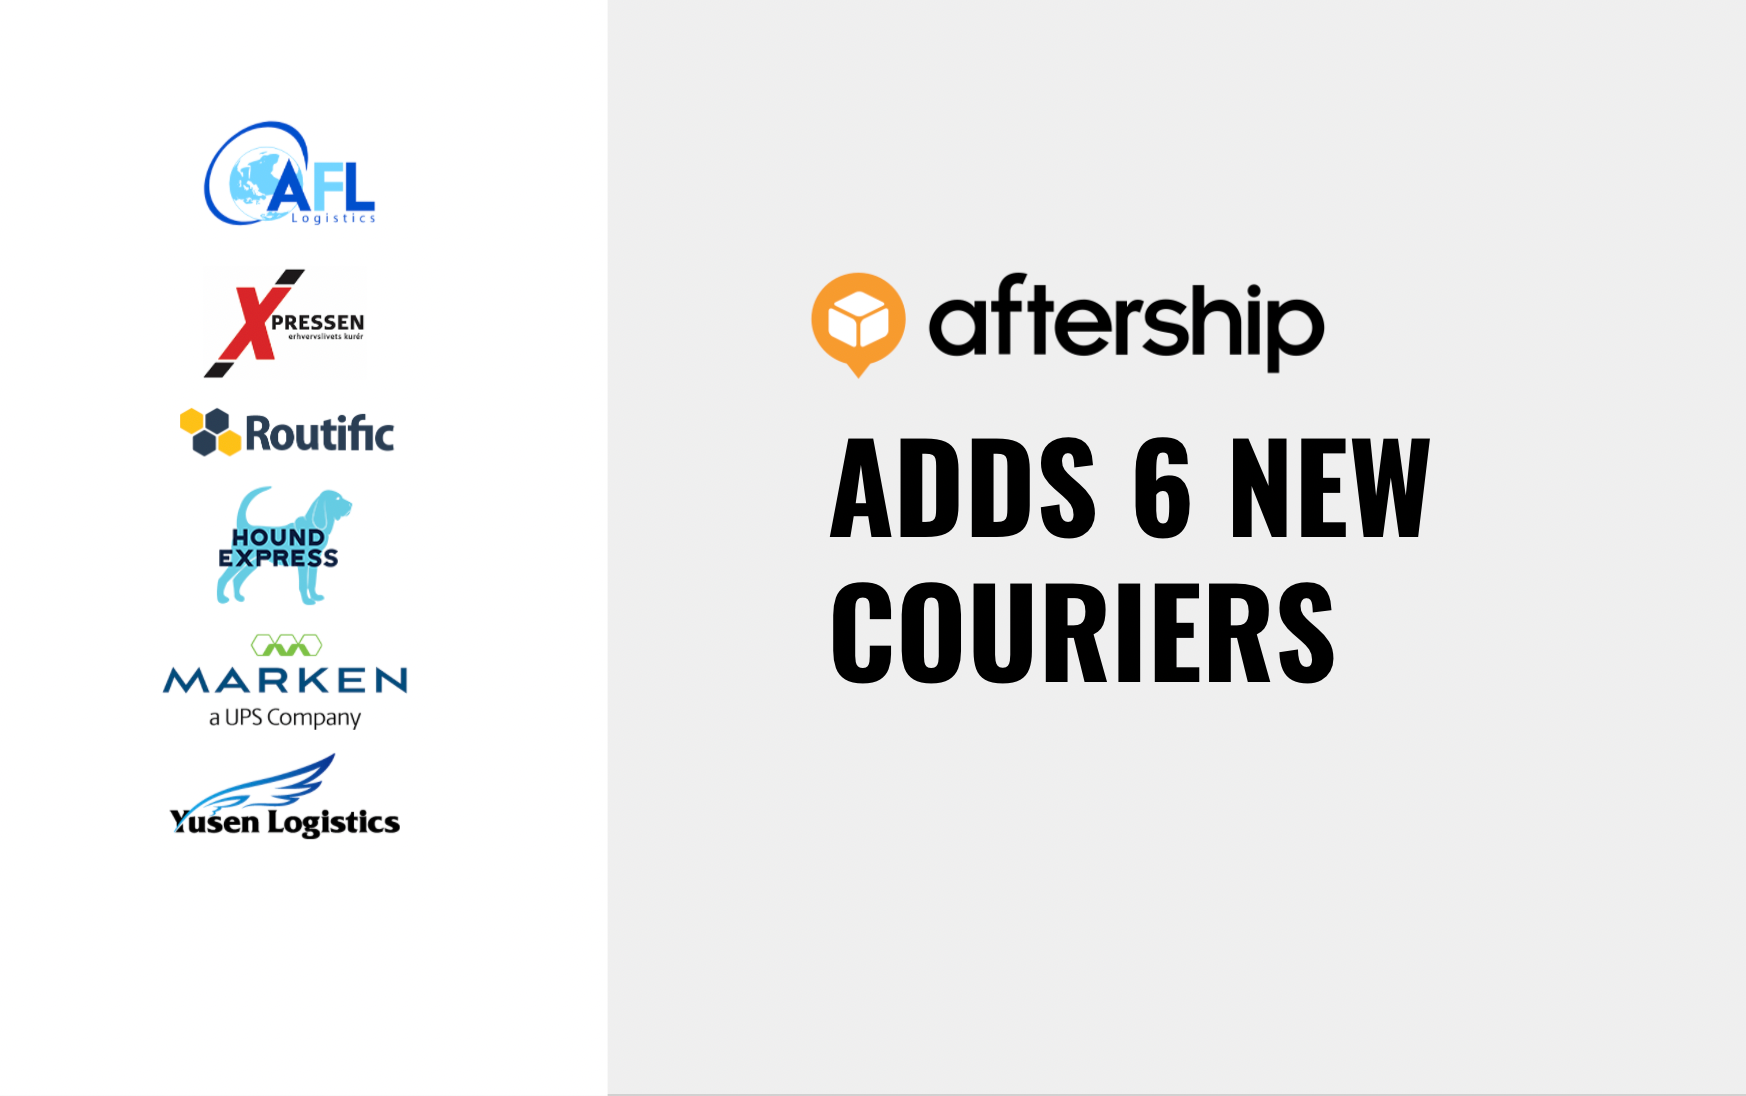 AfterShip adds 6 new couriers between 14th June 2021 and 27th June 2021